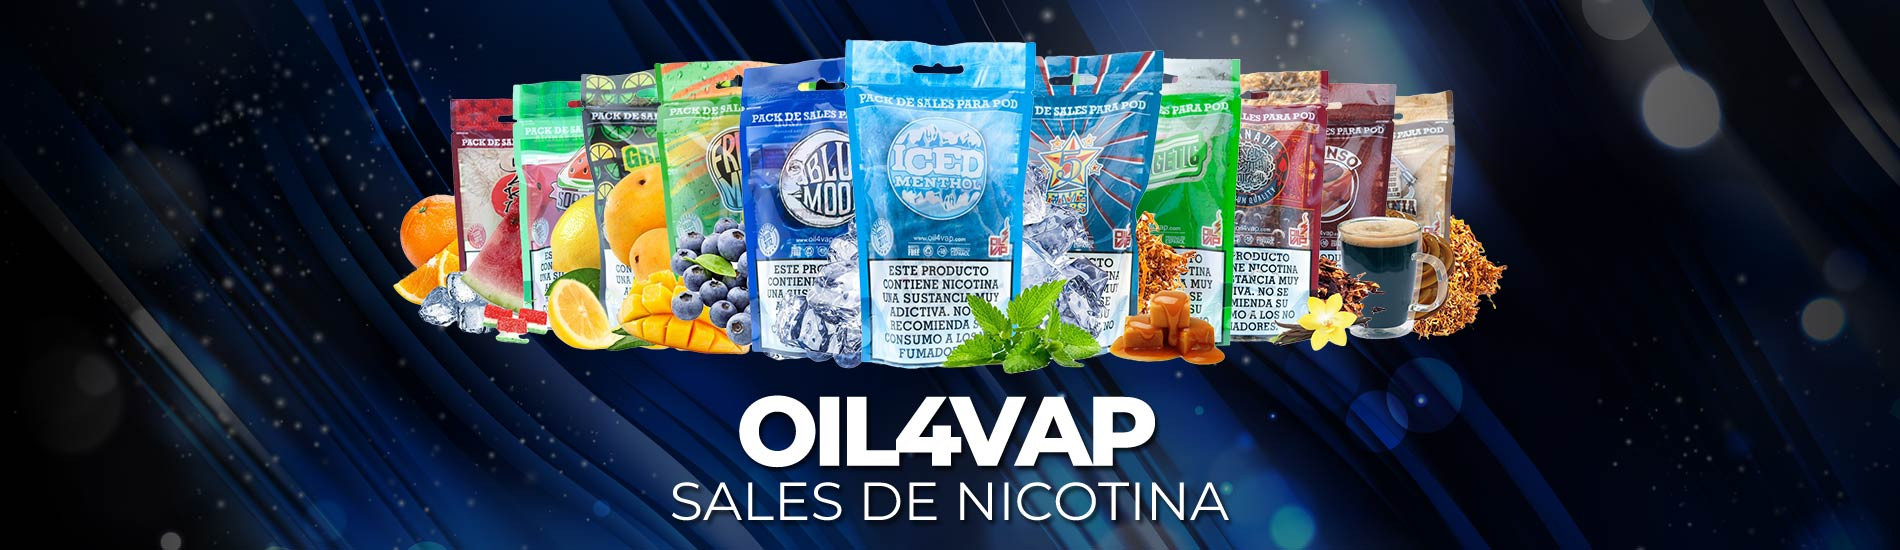 Sales de Nicotina OIL4VAP